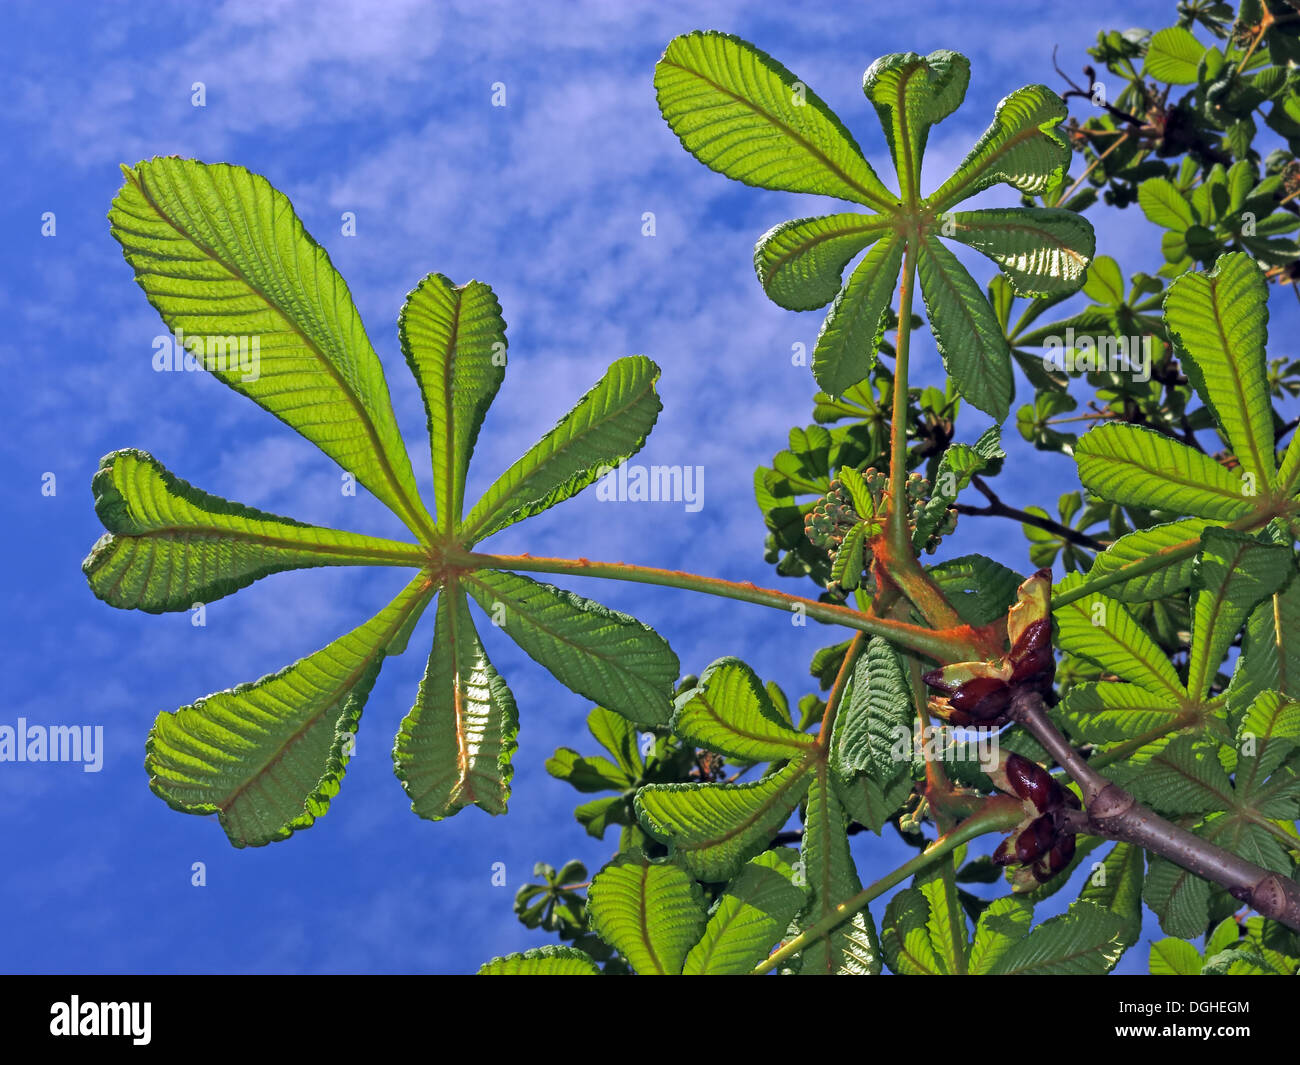 New horse chestnut leaf growth against a blue spring sky, Cheshire, England, UK - Stock Image